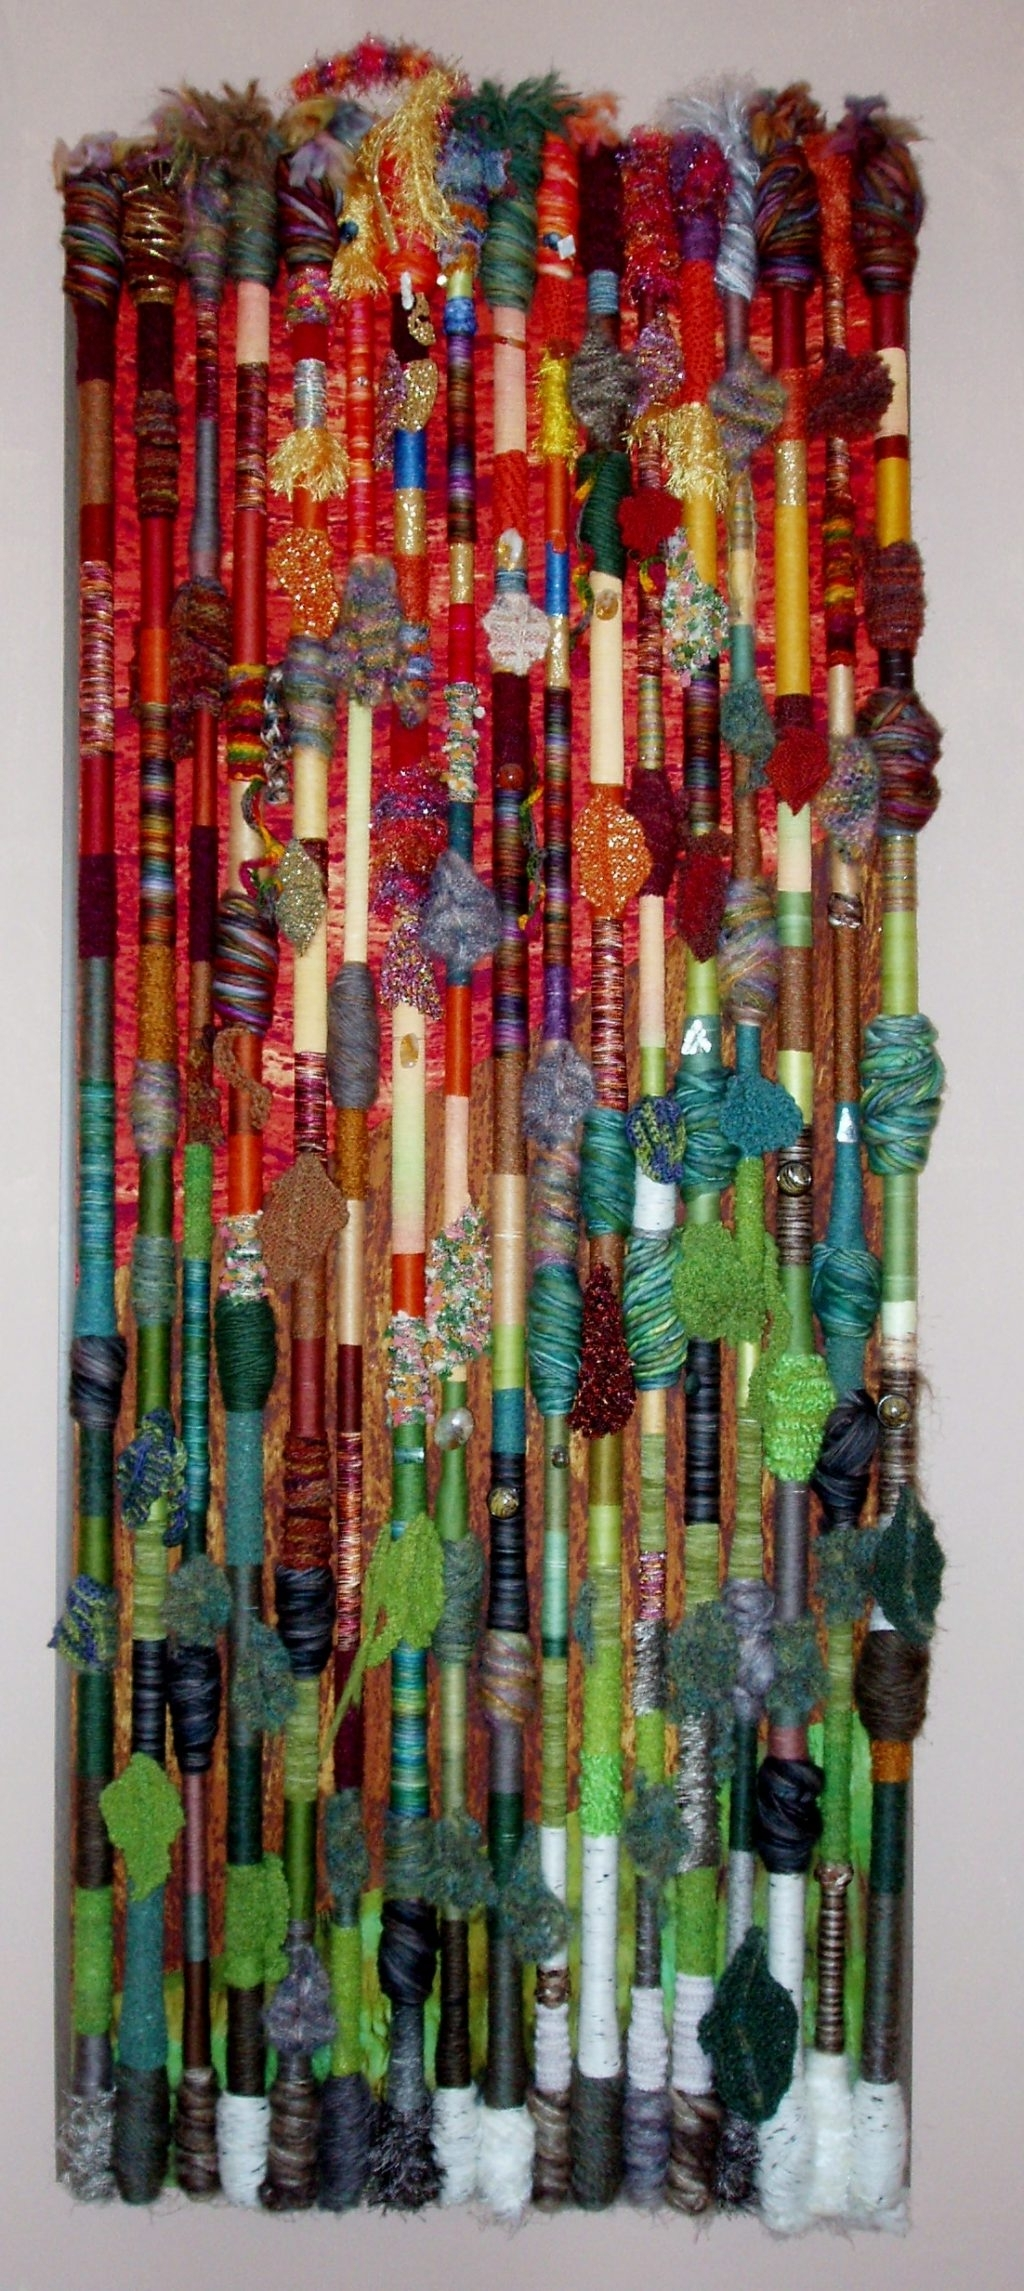 Fabric Wall Hangings Art With Well Liked Inspirational Design Ideas Textile Wall Hangings With Fiber Art (View 3 of 15)